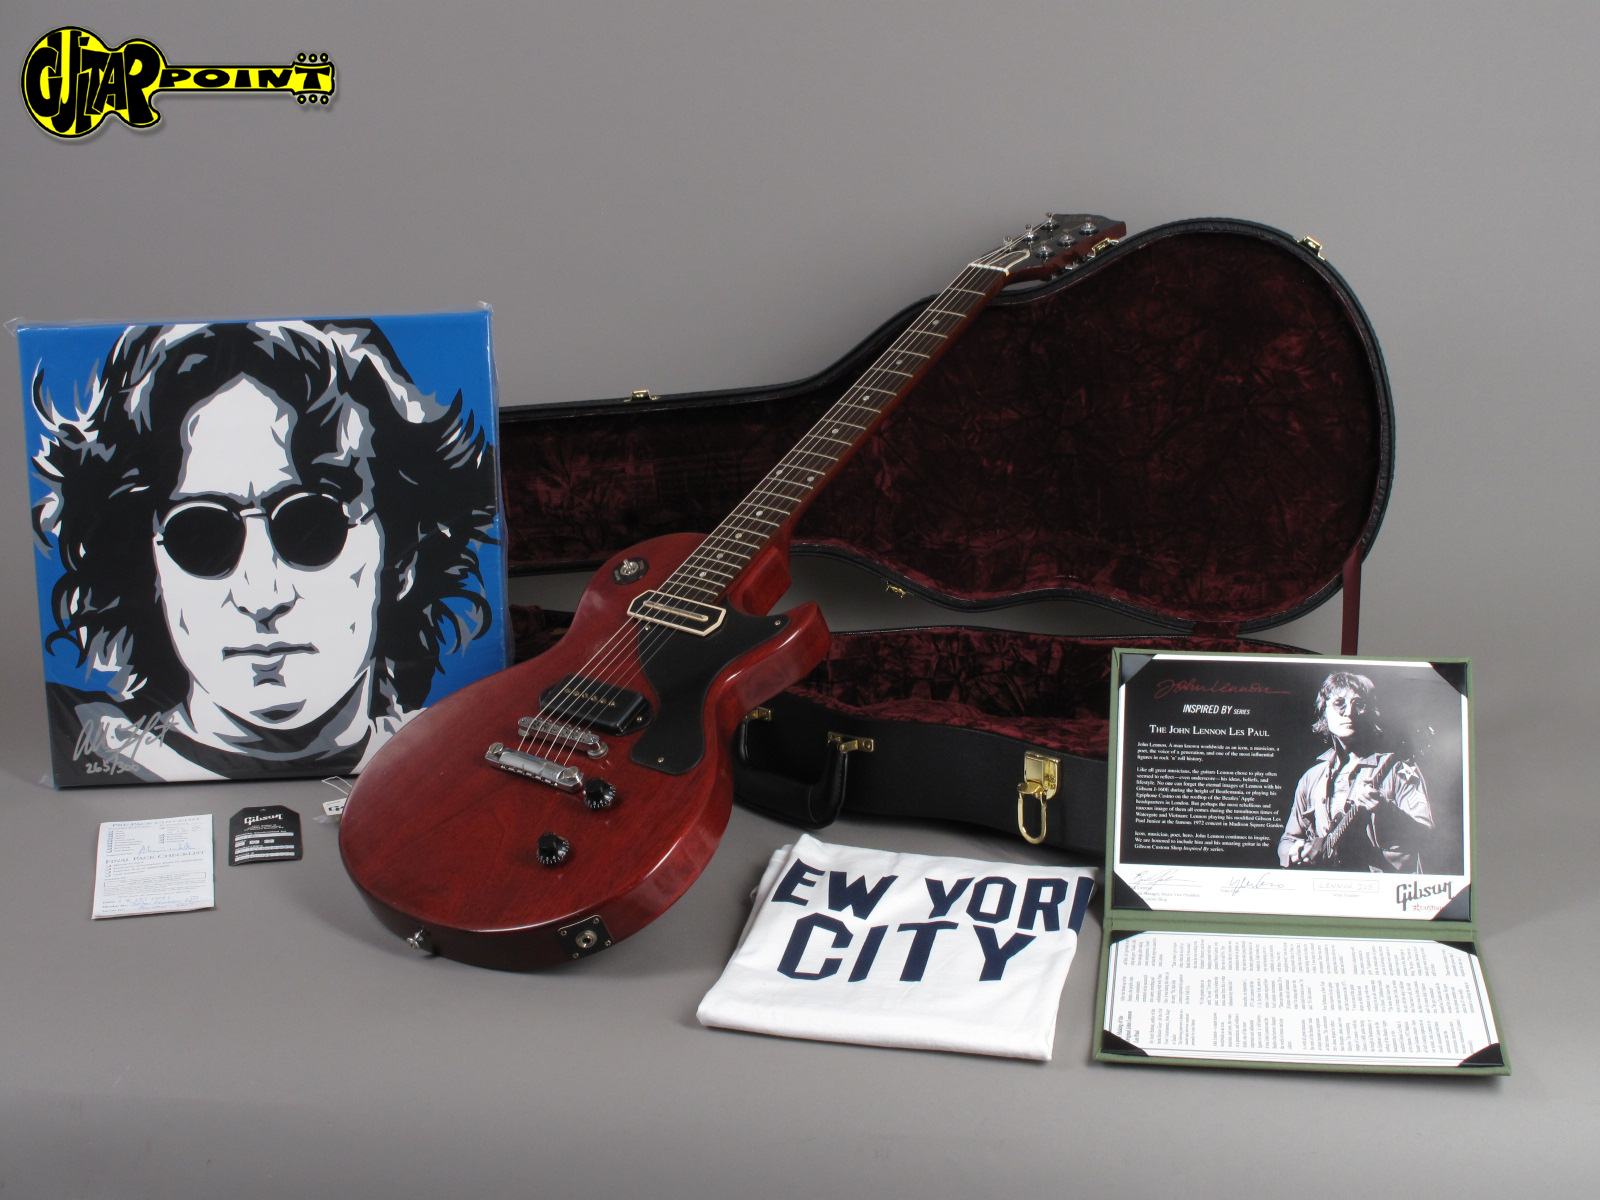 https://guitarpoint.de/app/uploads/products/2007-gibson-john-lennon-les-paul-junior-aged/GibsonLPJRLennon205_13.jpg